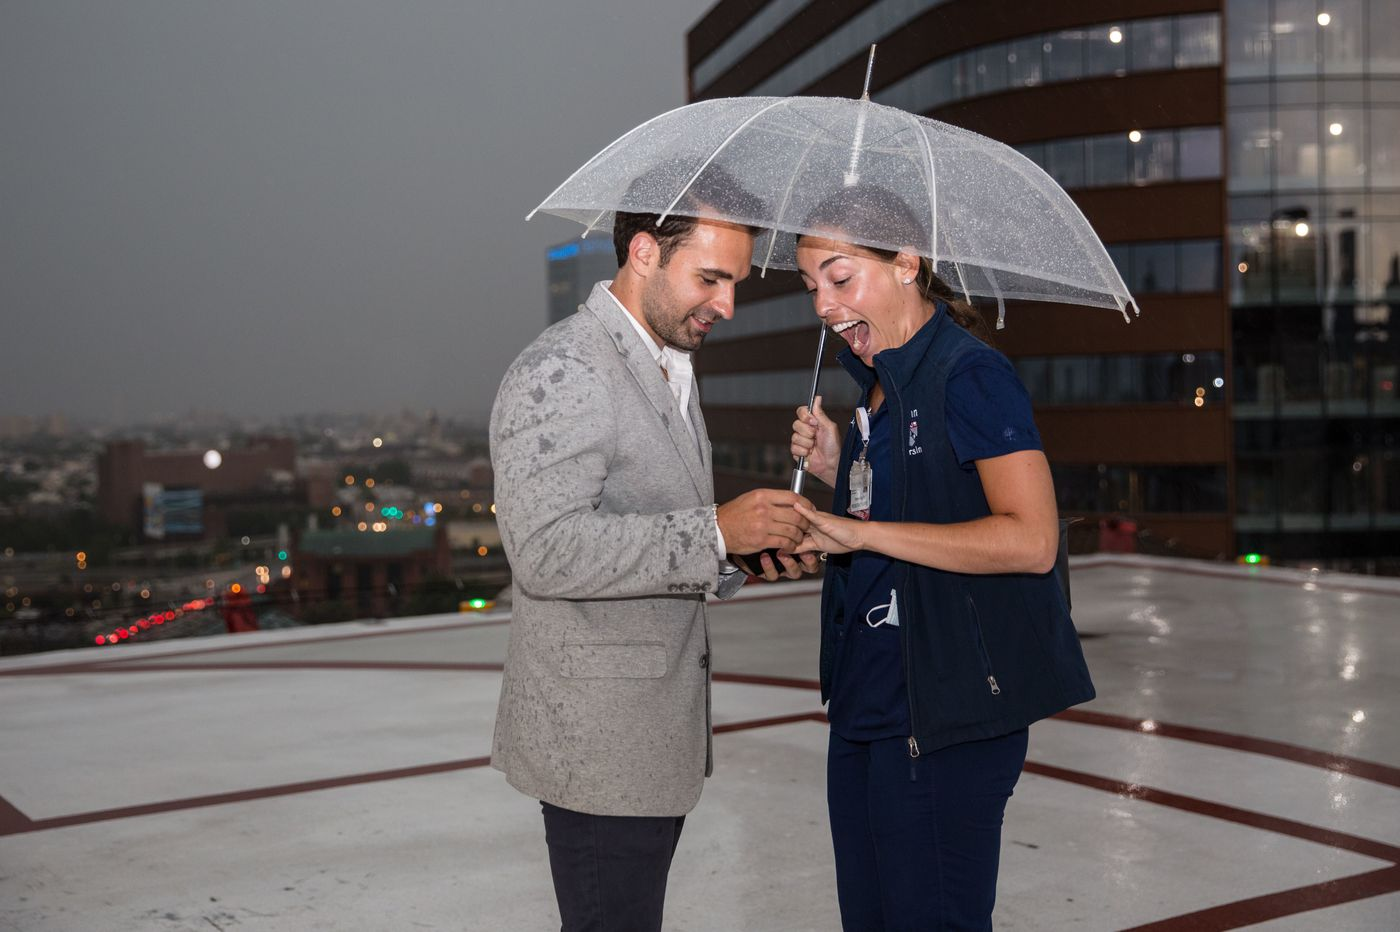 These Penn nurses got engaged on the helipad of the hospital where they fell in love